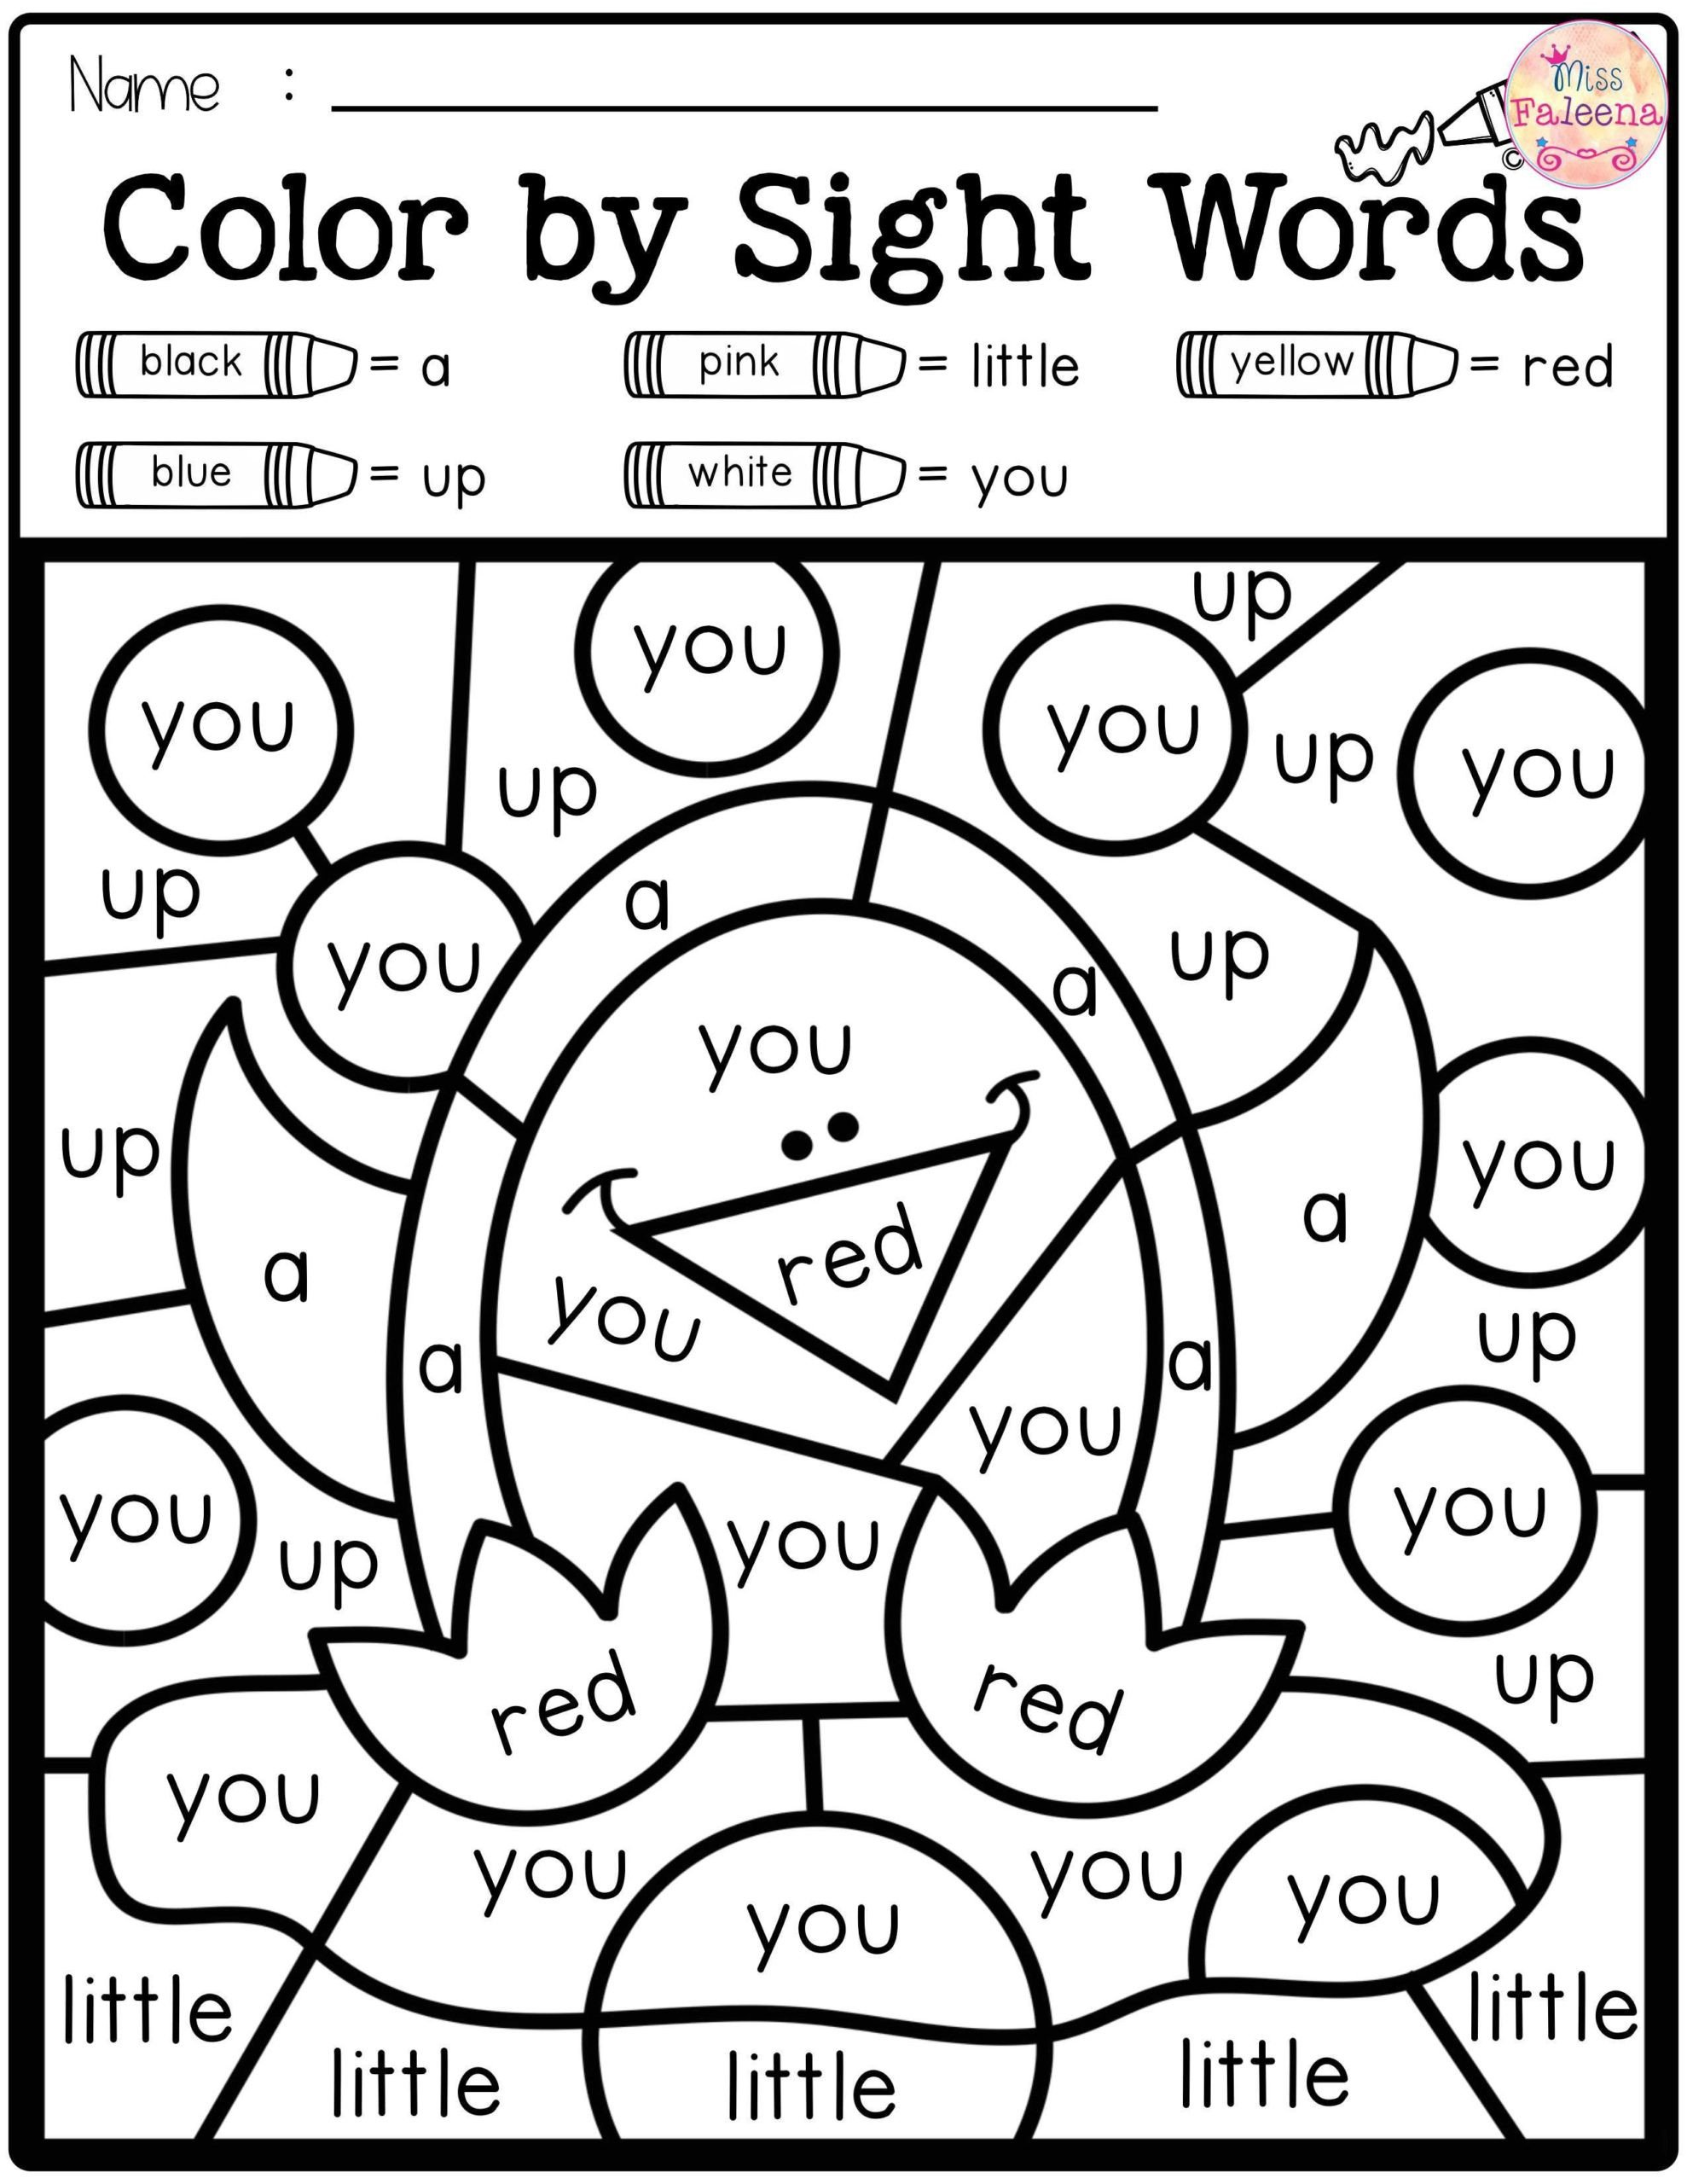 Color Word Worksheets Kindergarten Worksheets Math Worksheet Awesome Simpleon Color by Number